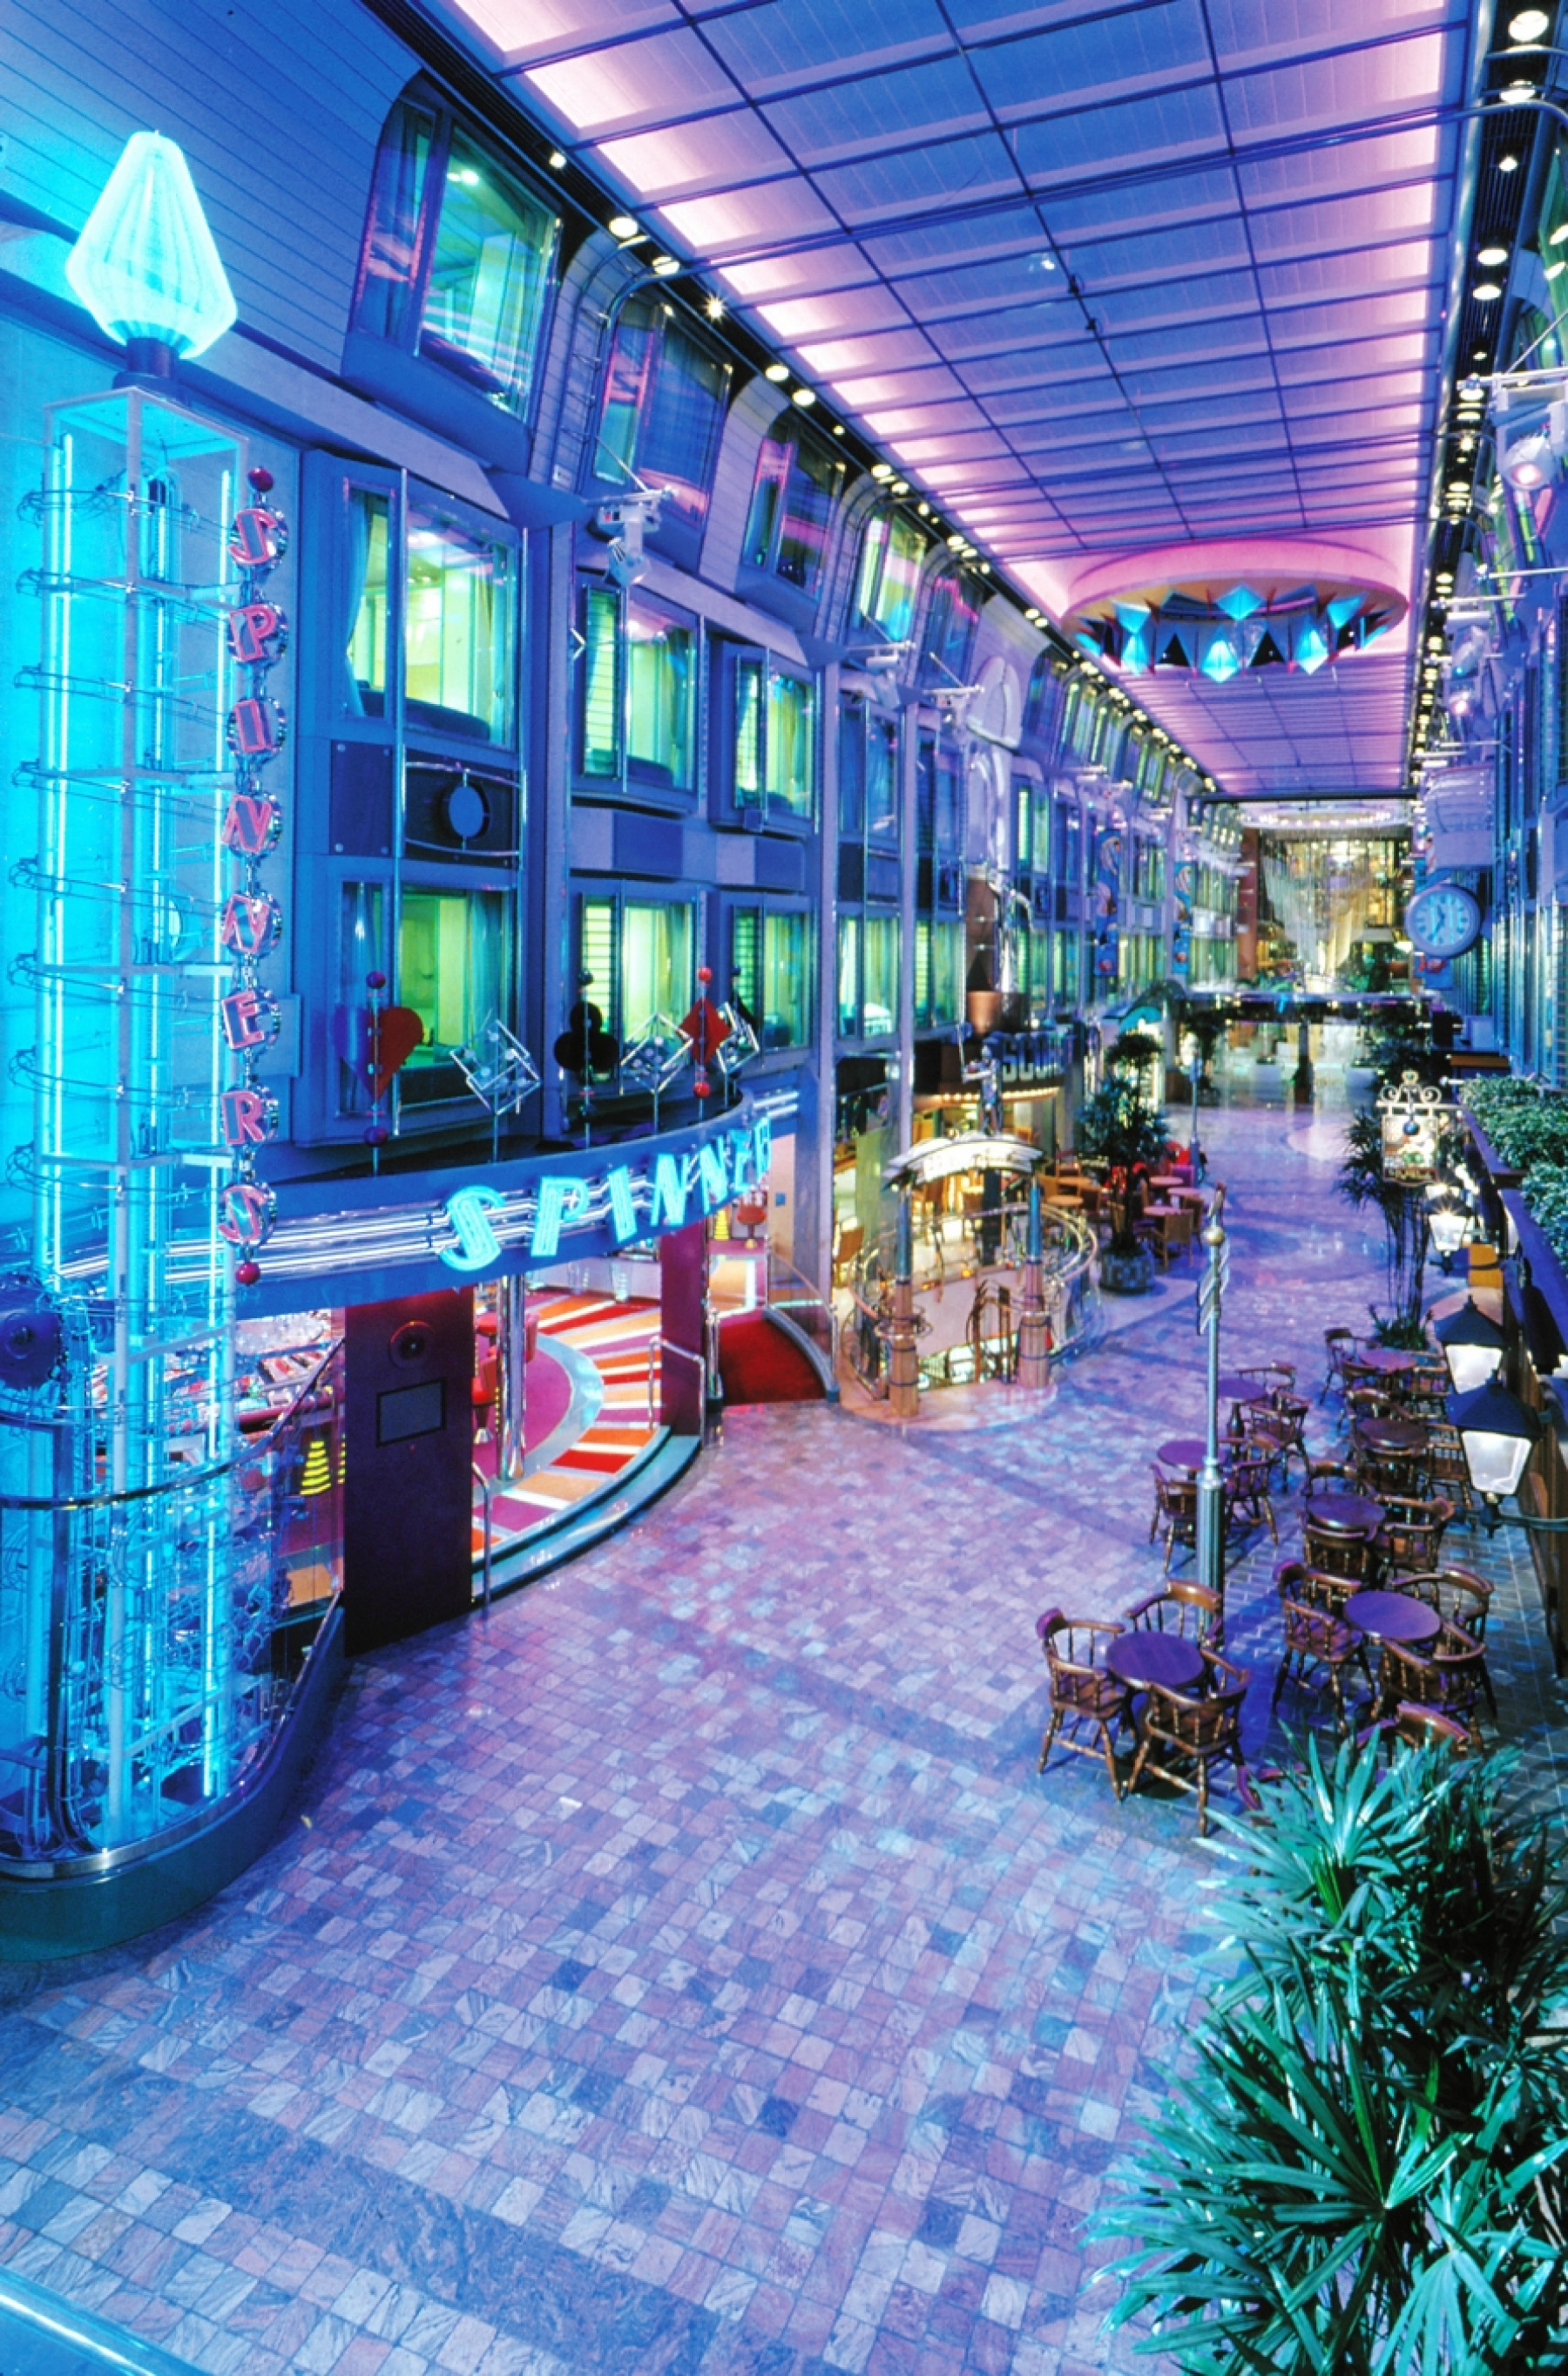 Royal Caribbean International Voyager of the Seas Interior Promenade.jpg